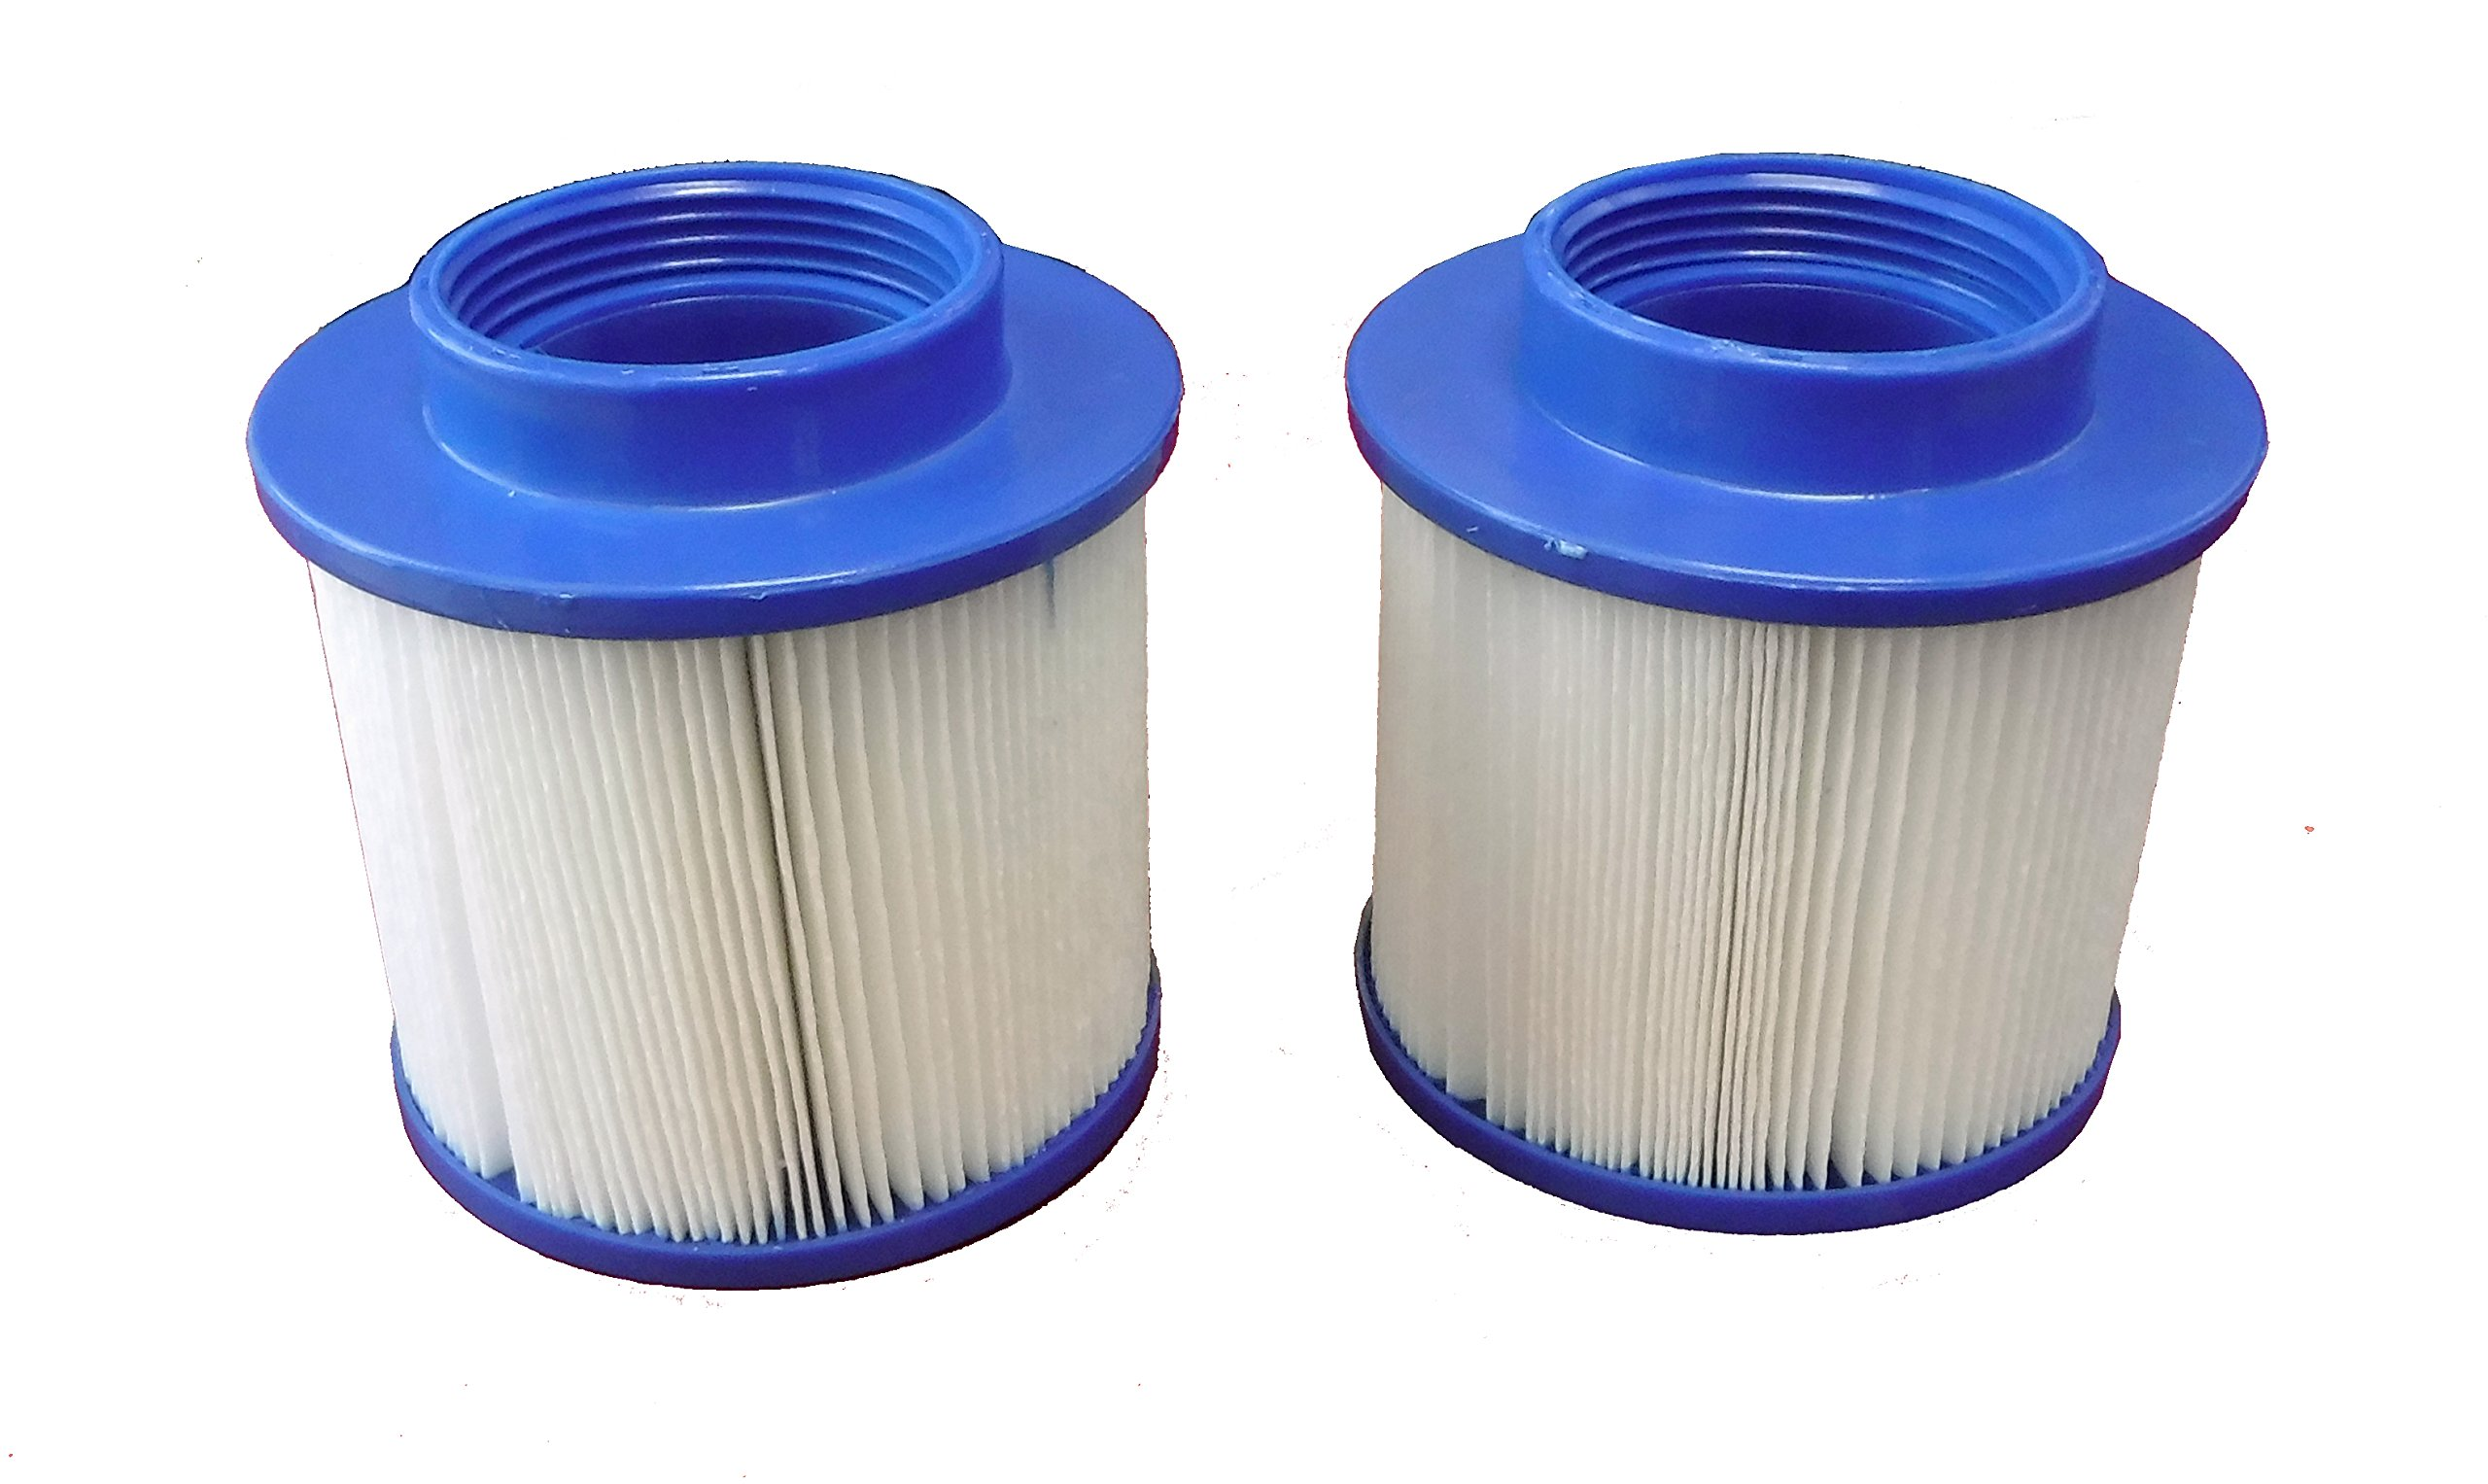 Smart Spa – Goplus/Aqua Spa PH050013, PH050015, PH050017, PH050018 Replacement Spa Filter -Note - Filters ONLY FIT Goplus & Aqua & Aero SPAS. Pack of 2